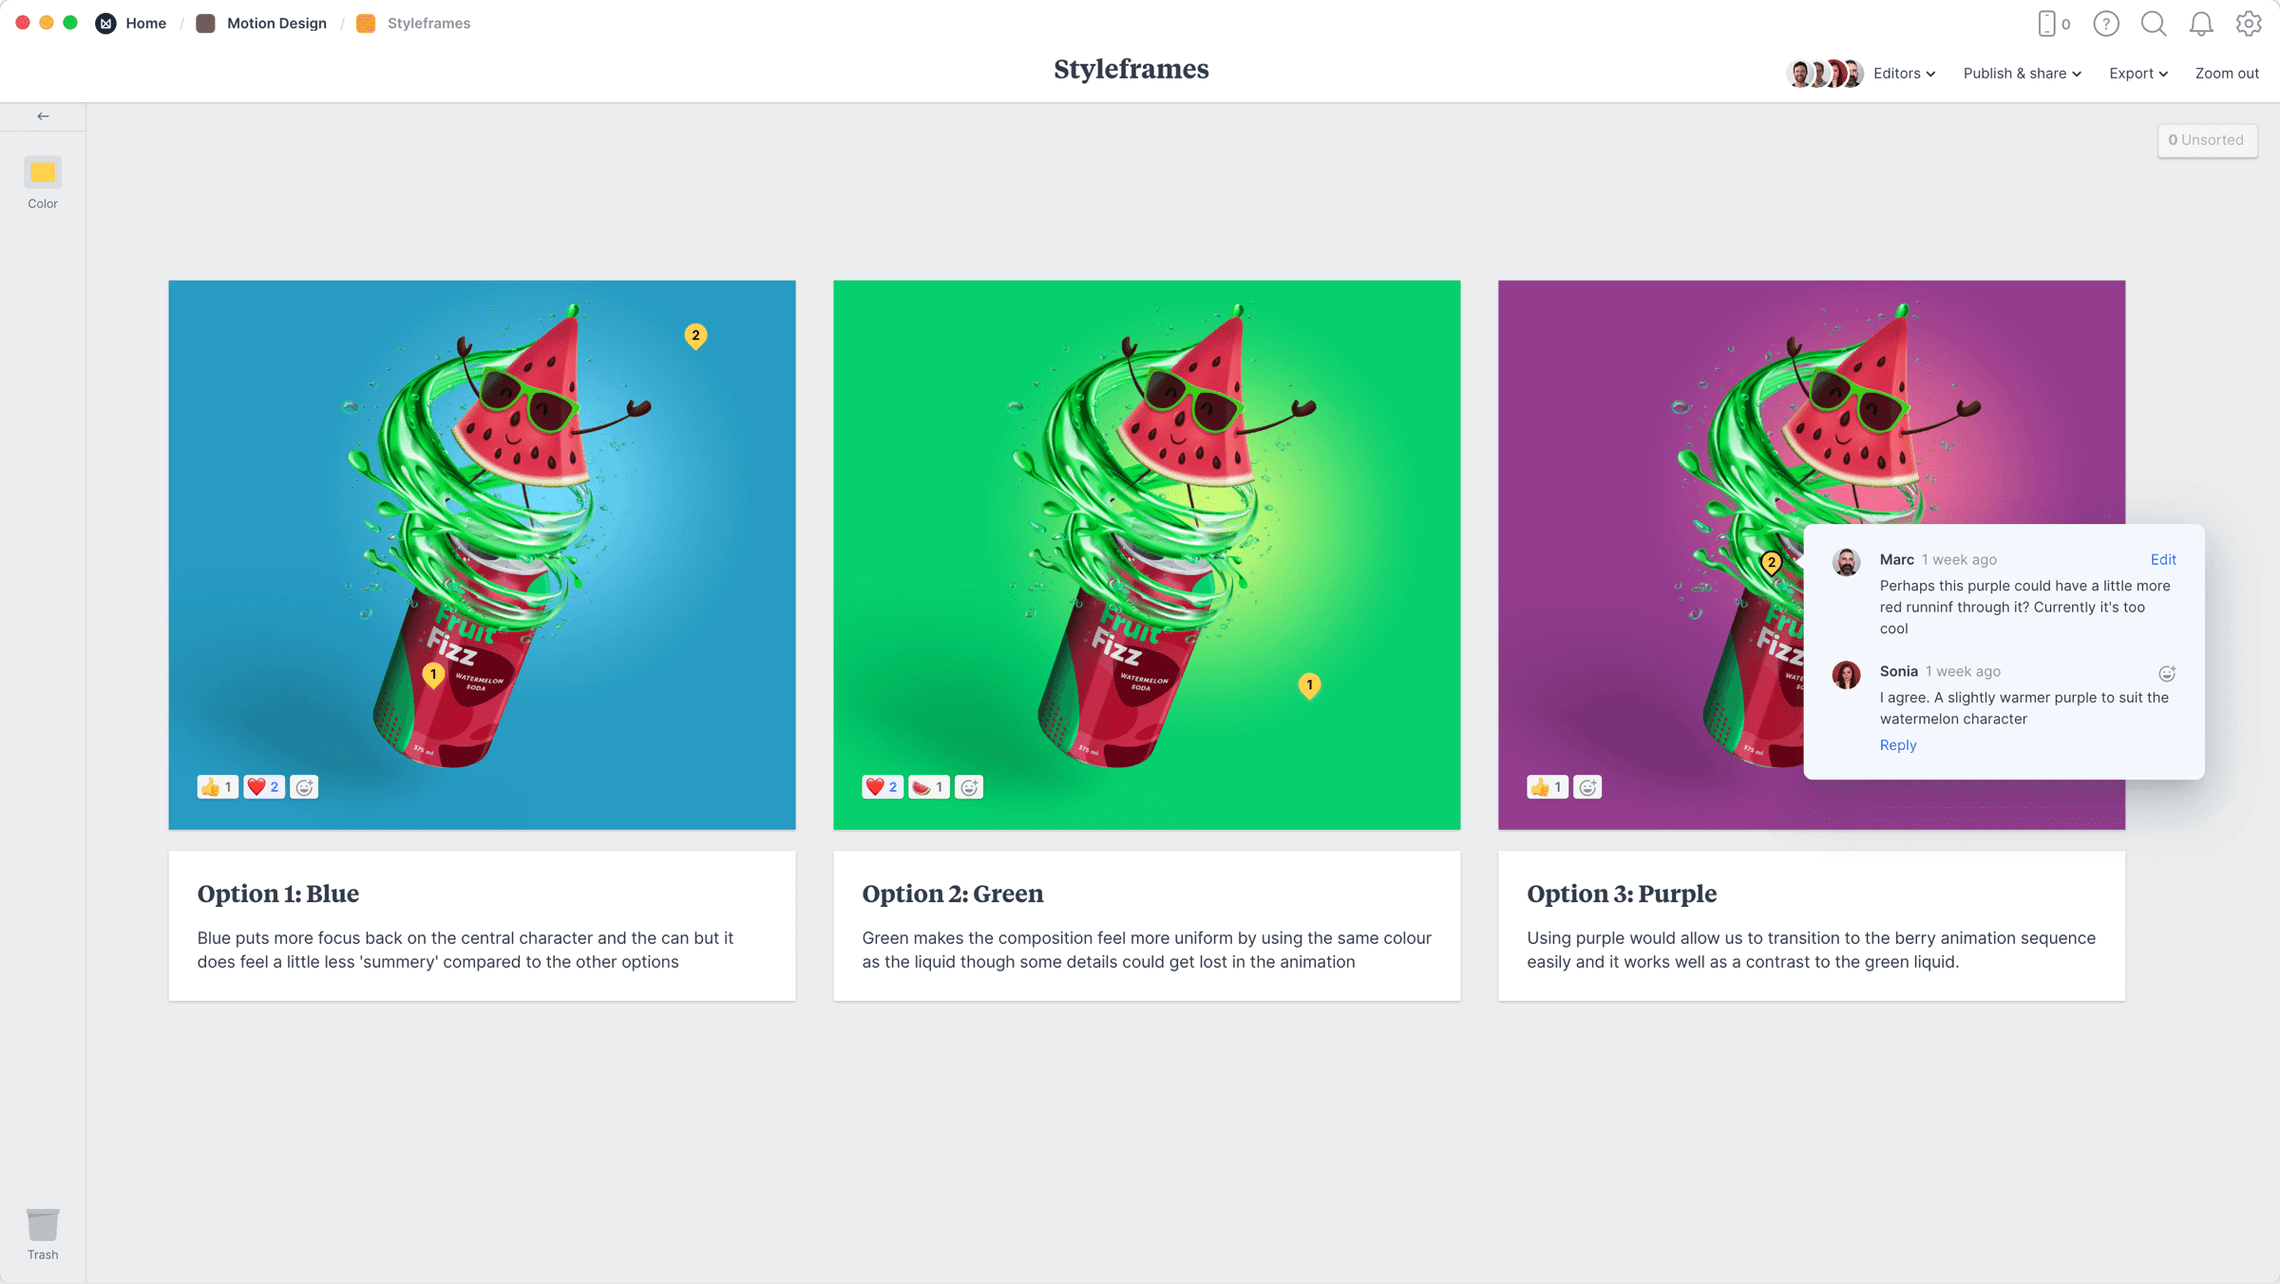 Motion Design Style Frames Template, within the Milanote app